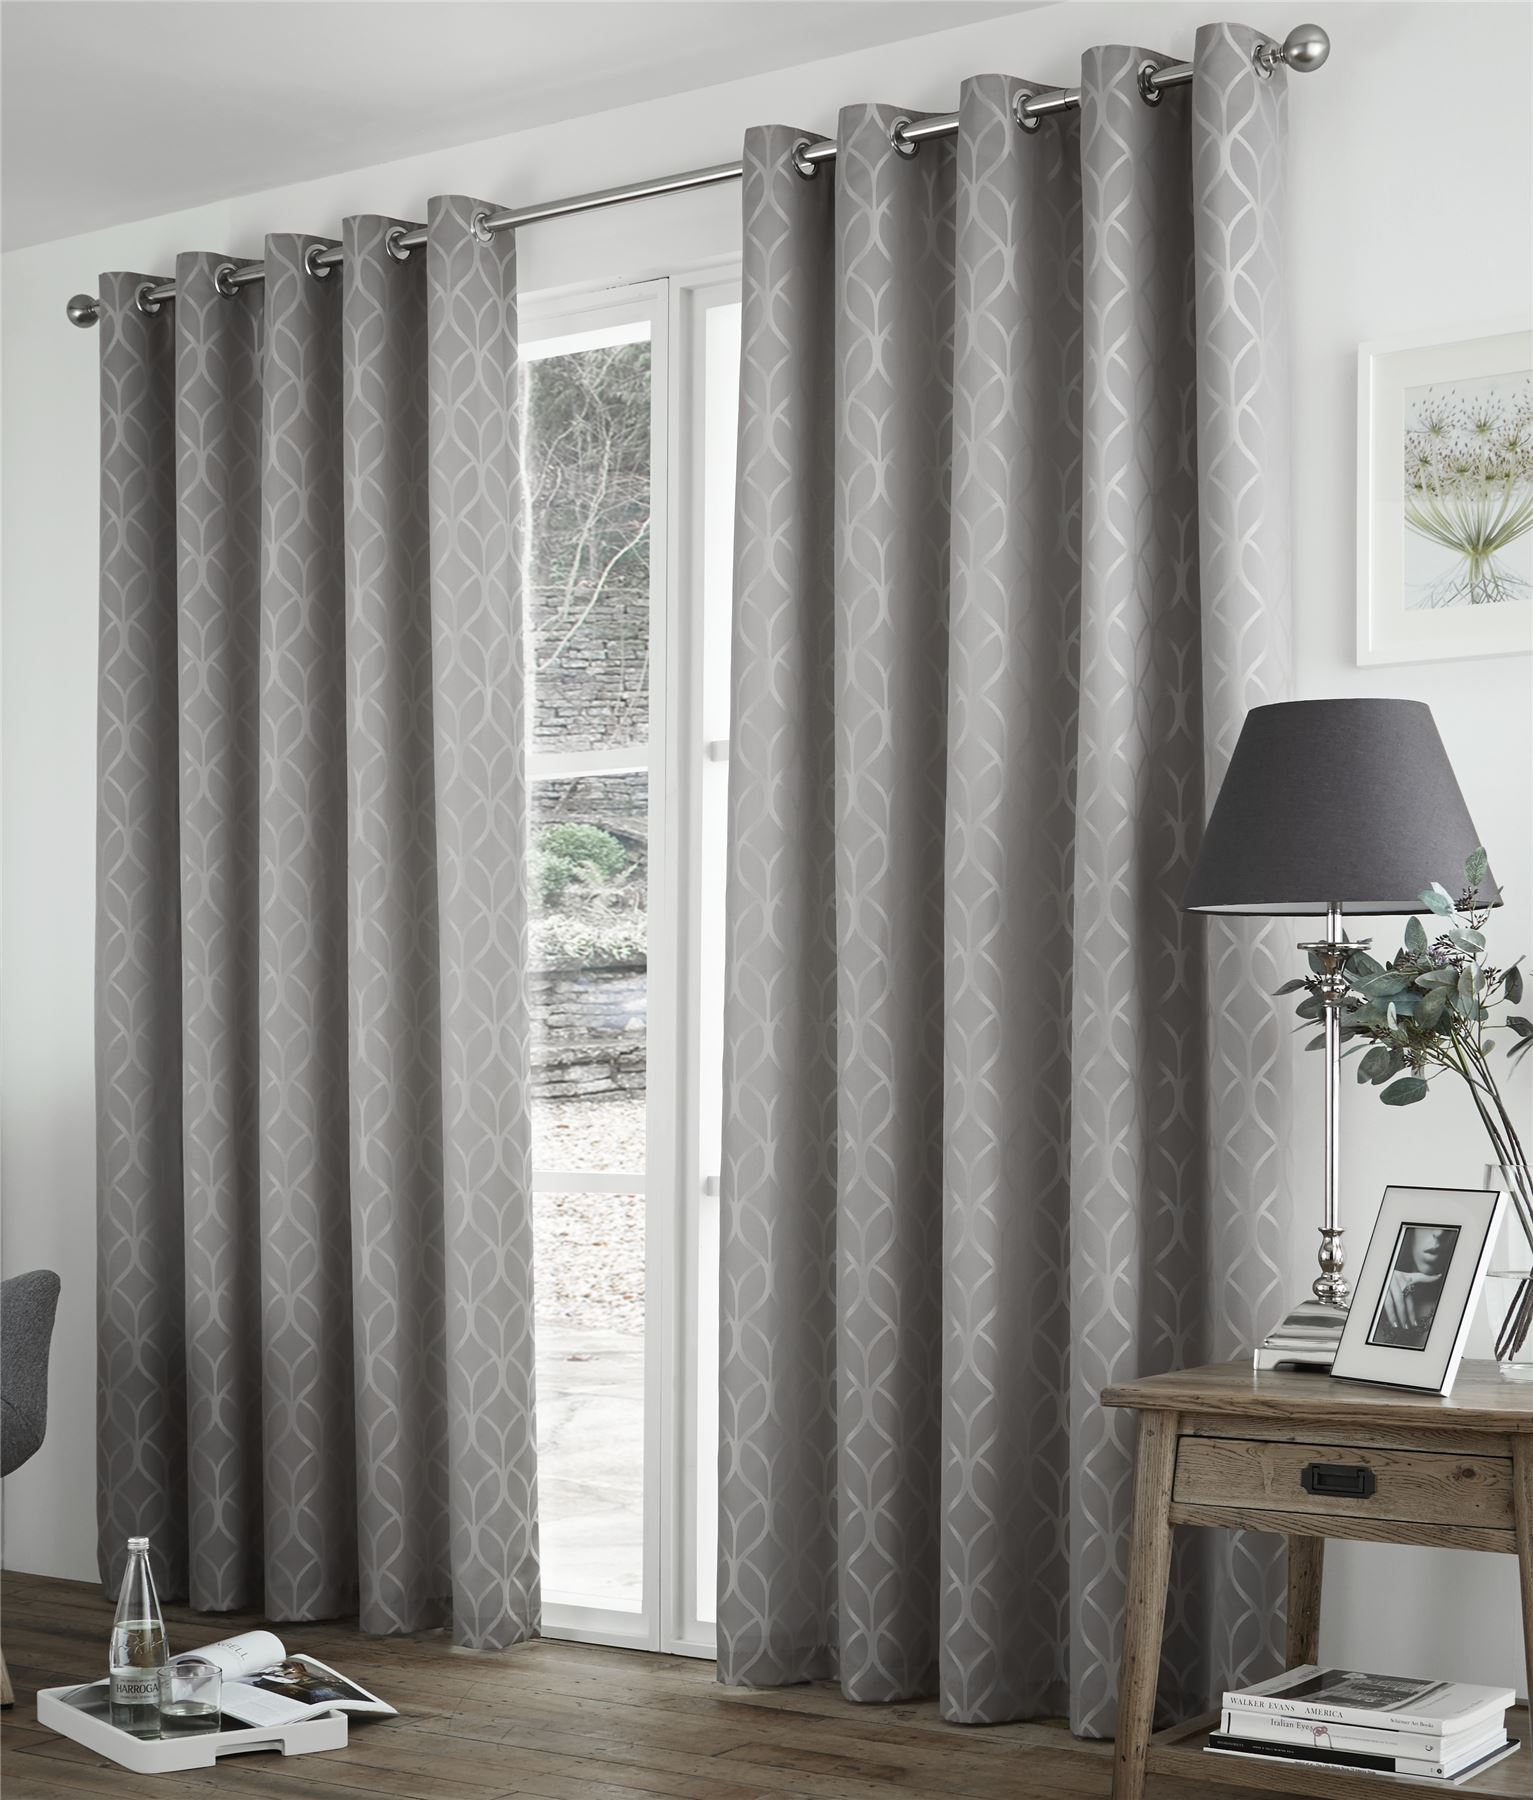 Thermal curtains grey - Geometric Two Tone Grey Thermal Block Out Lined